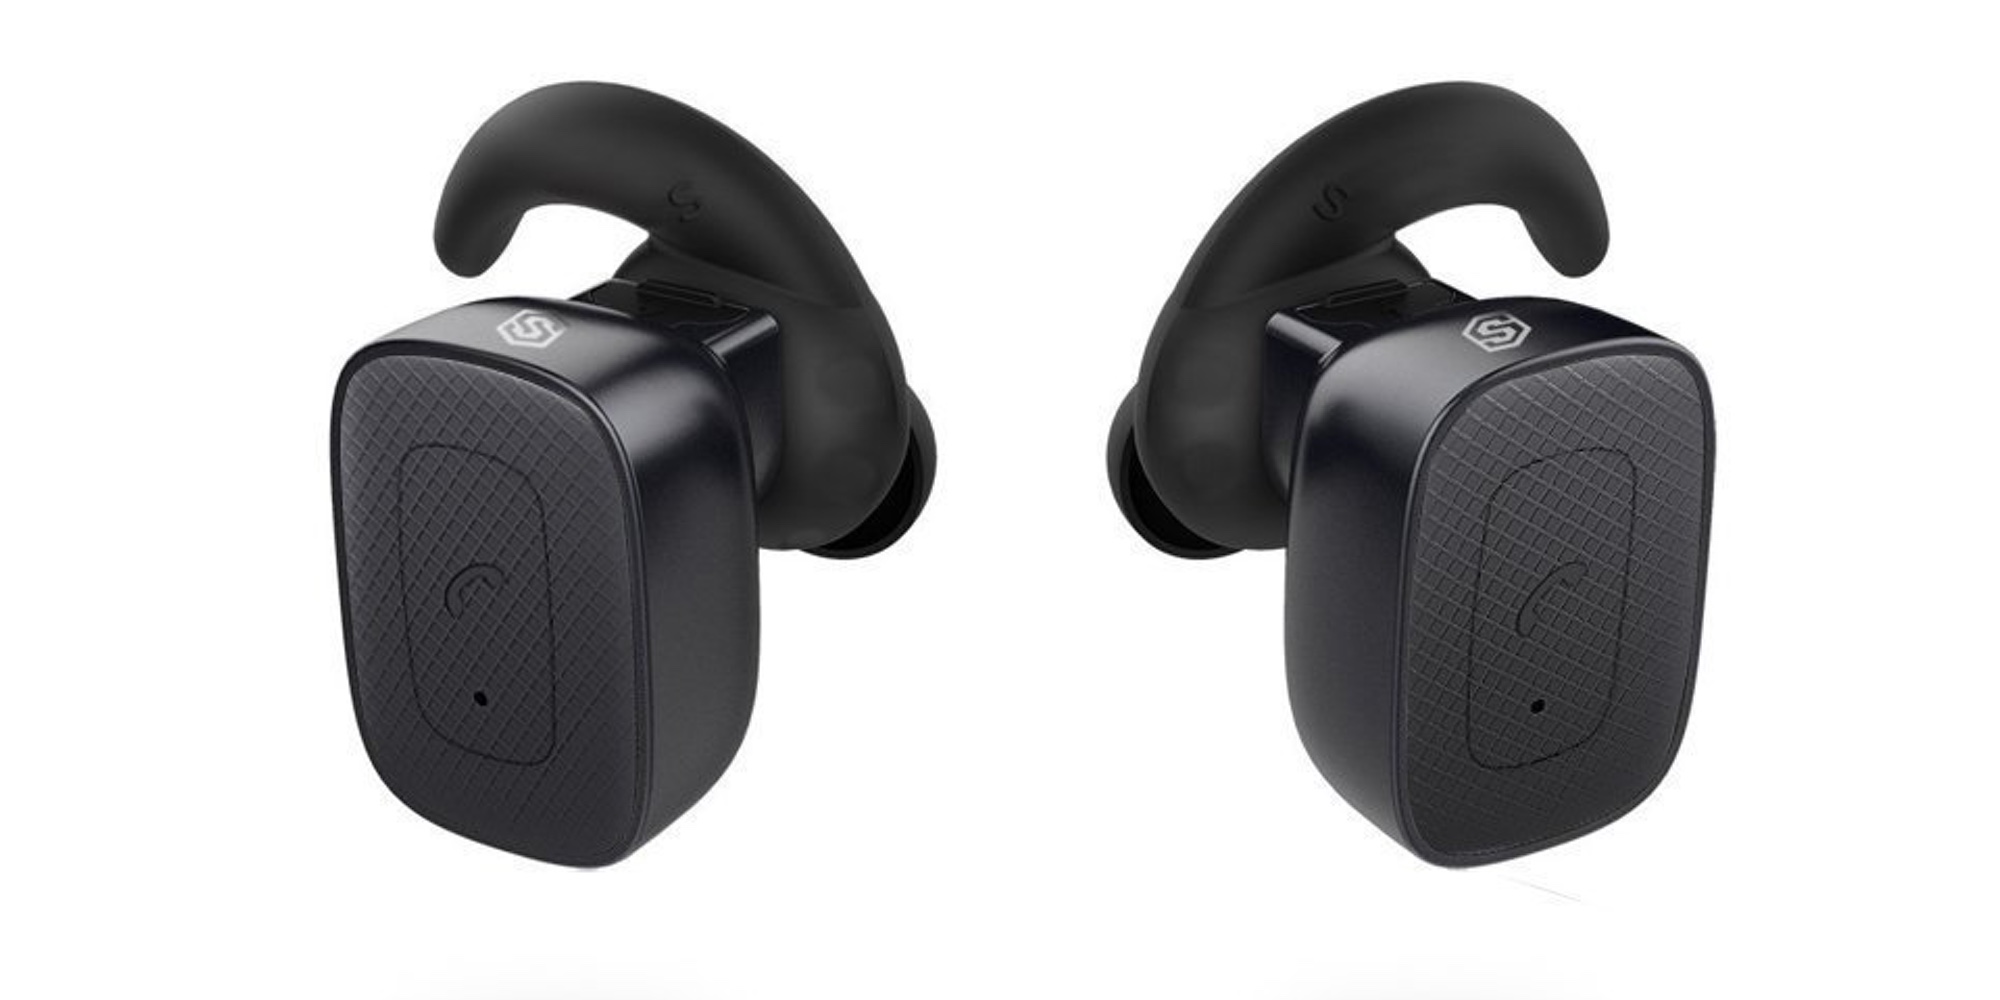 Go truly wireless with the SmartOmi Bluetooth Headphones for $20 Prime shipped (Reg. $40)